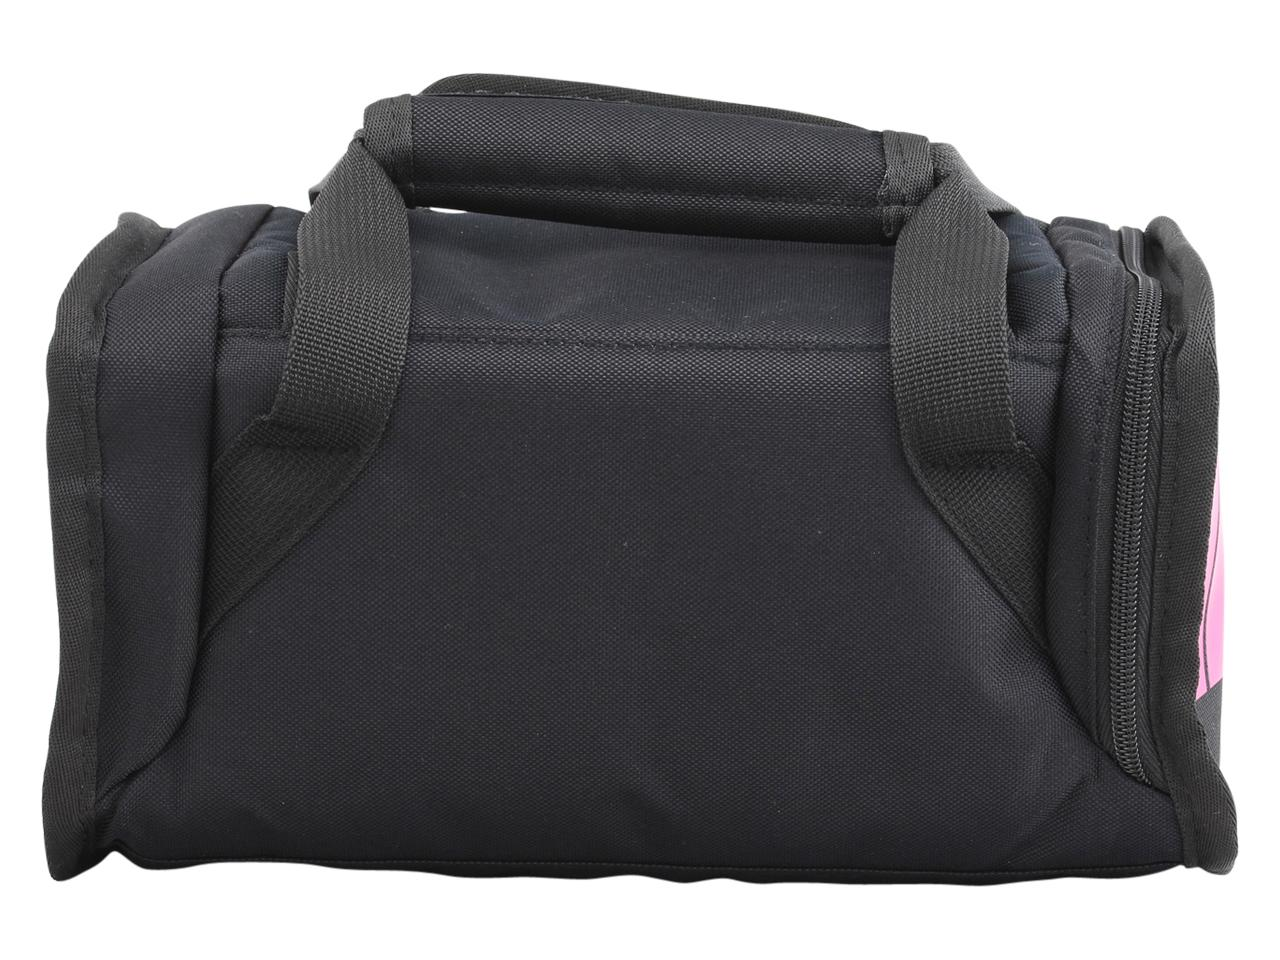 Nike-Deluxe-Insulated-Tote-Lunch-Bag thumbnail 12